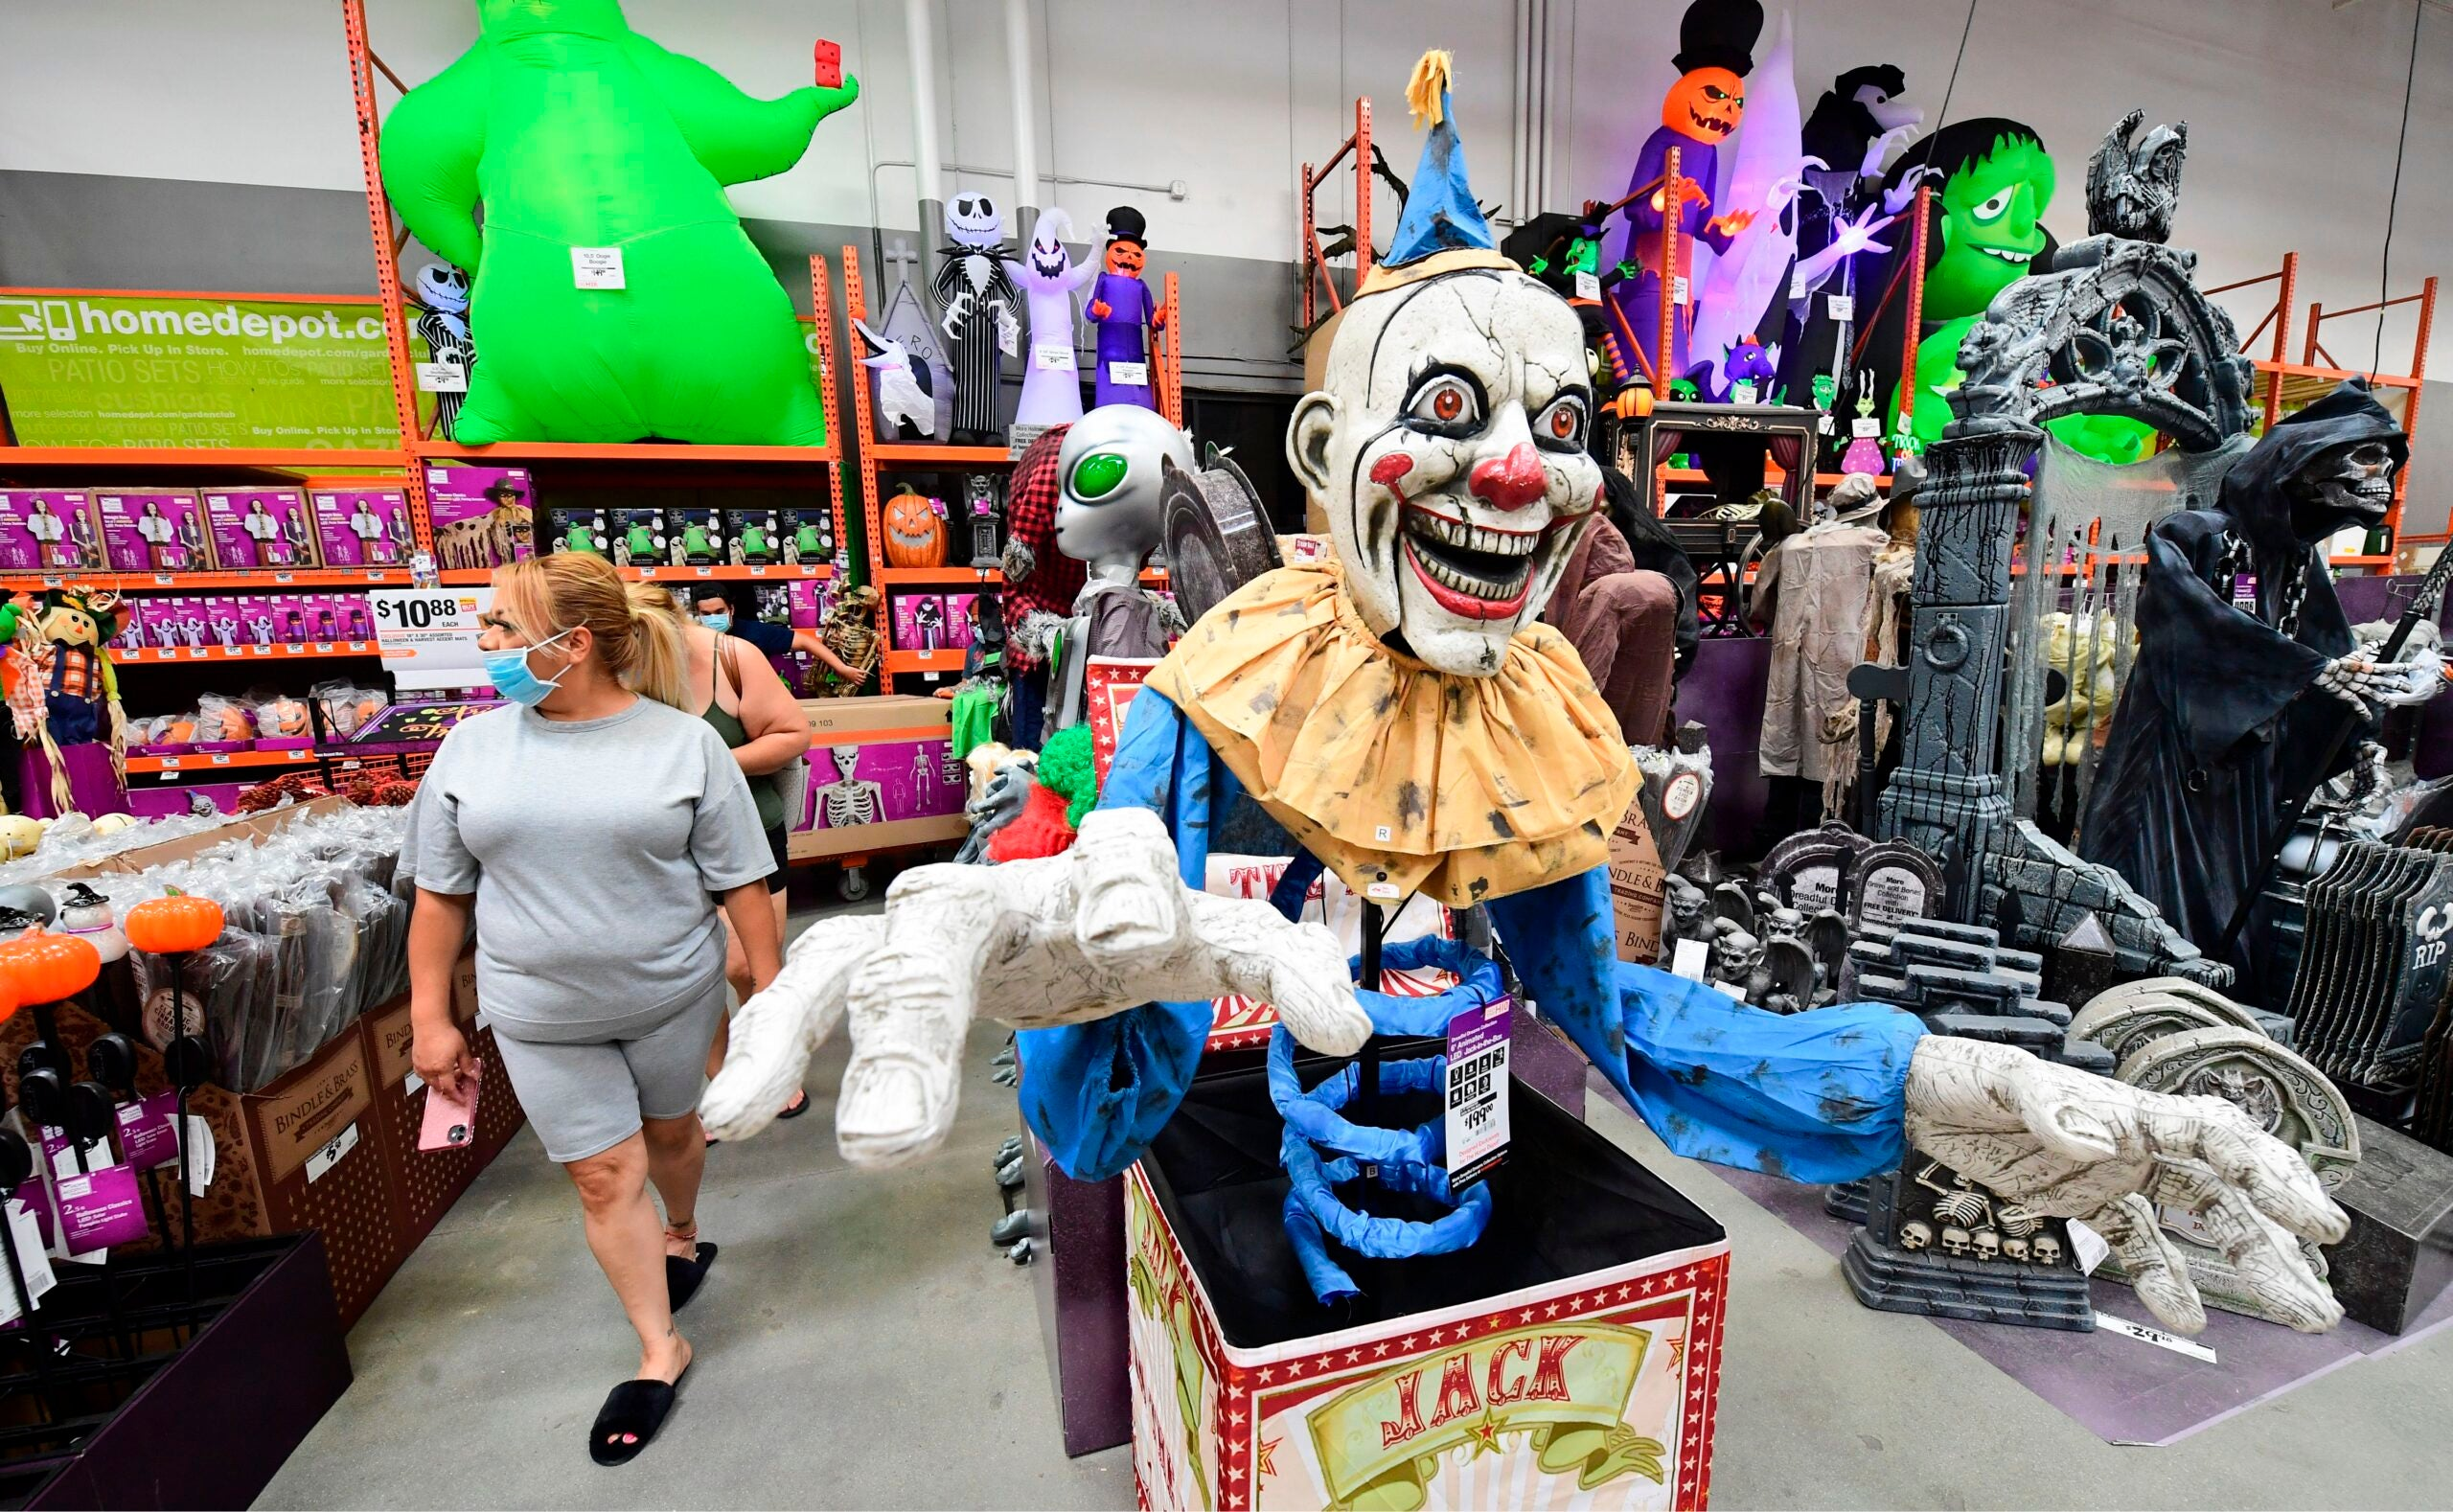 People shop for Halloween items at a home improvement retail store.